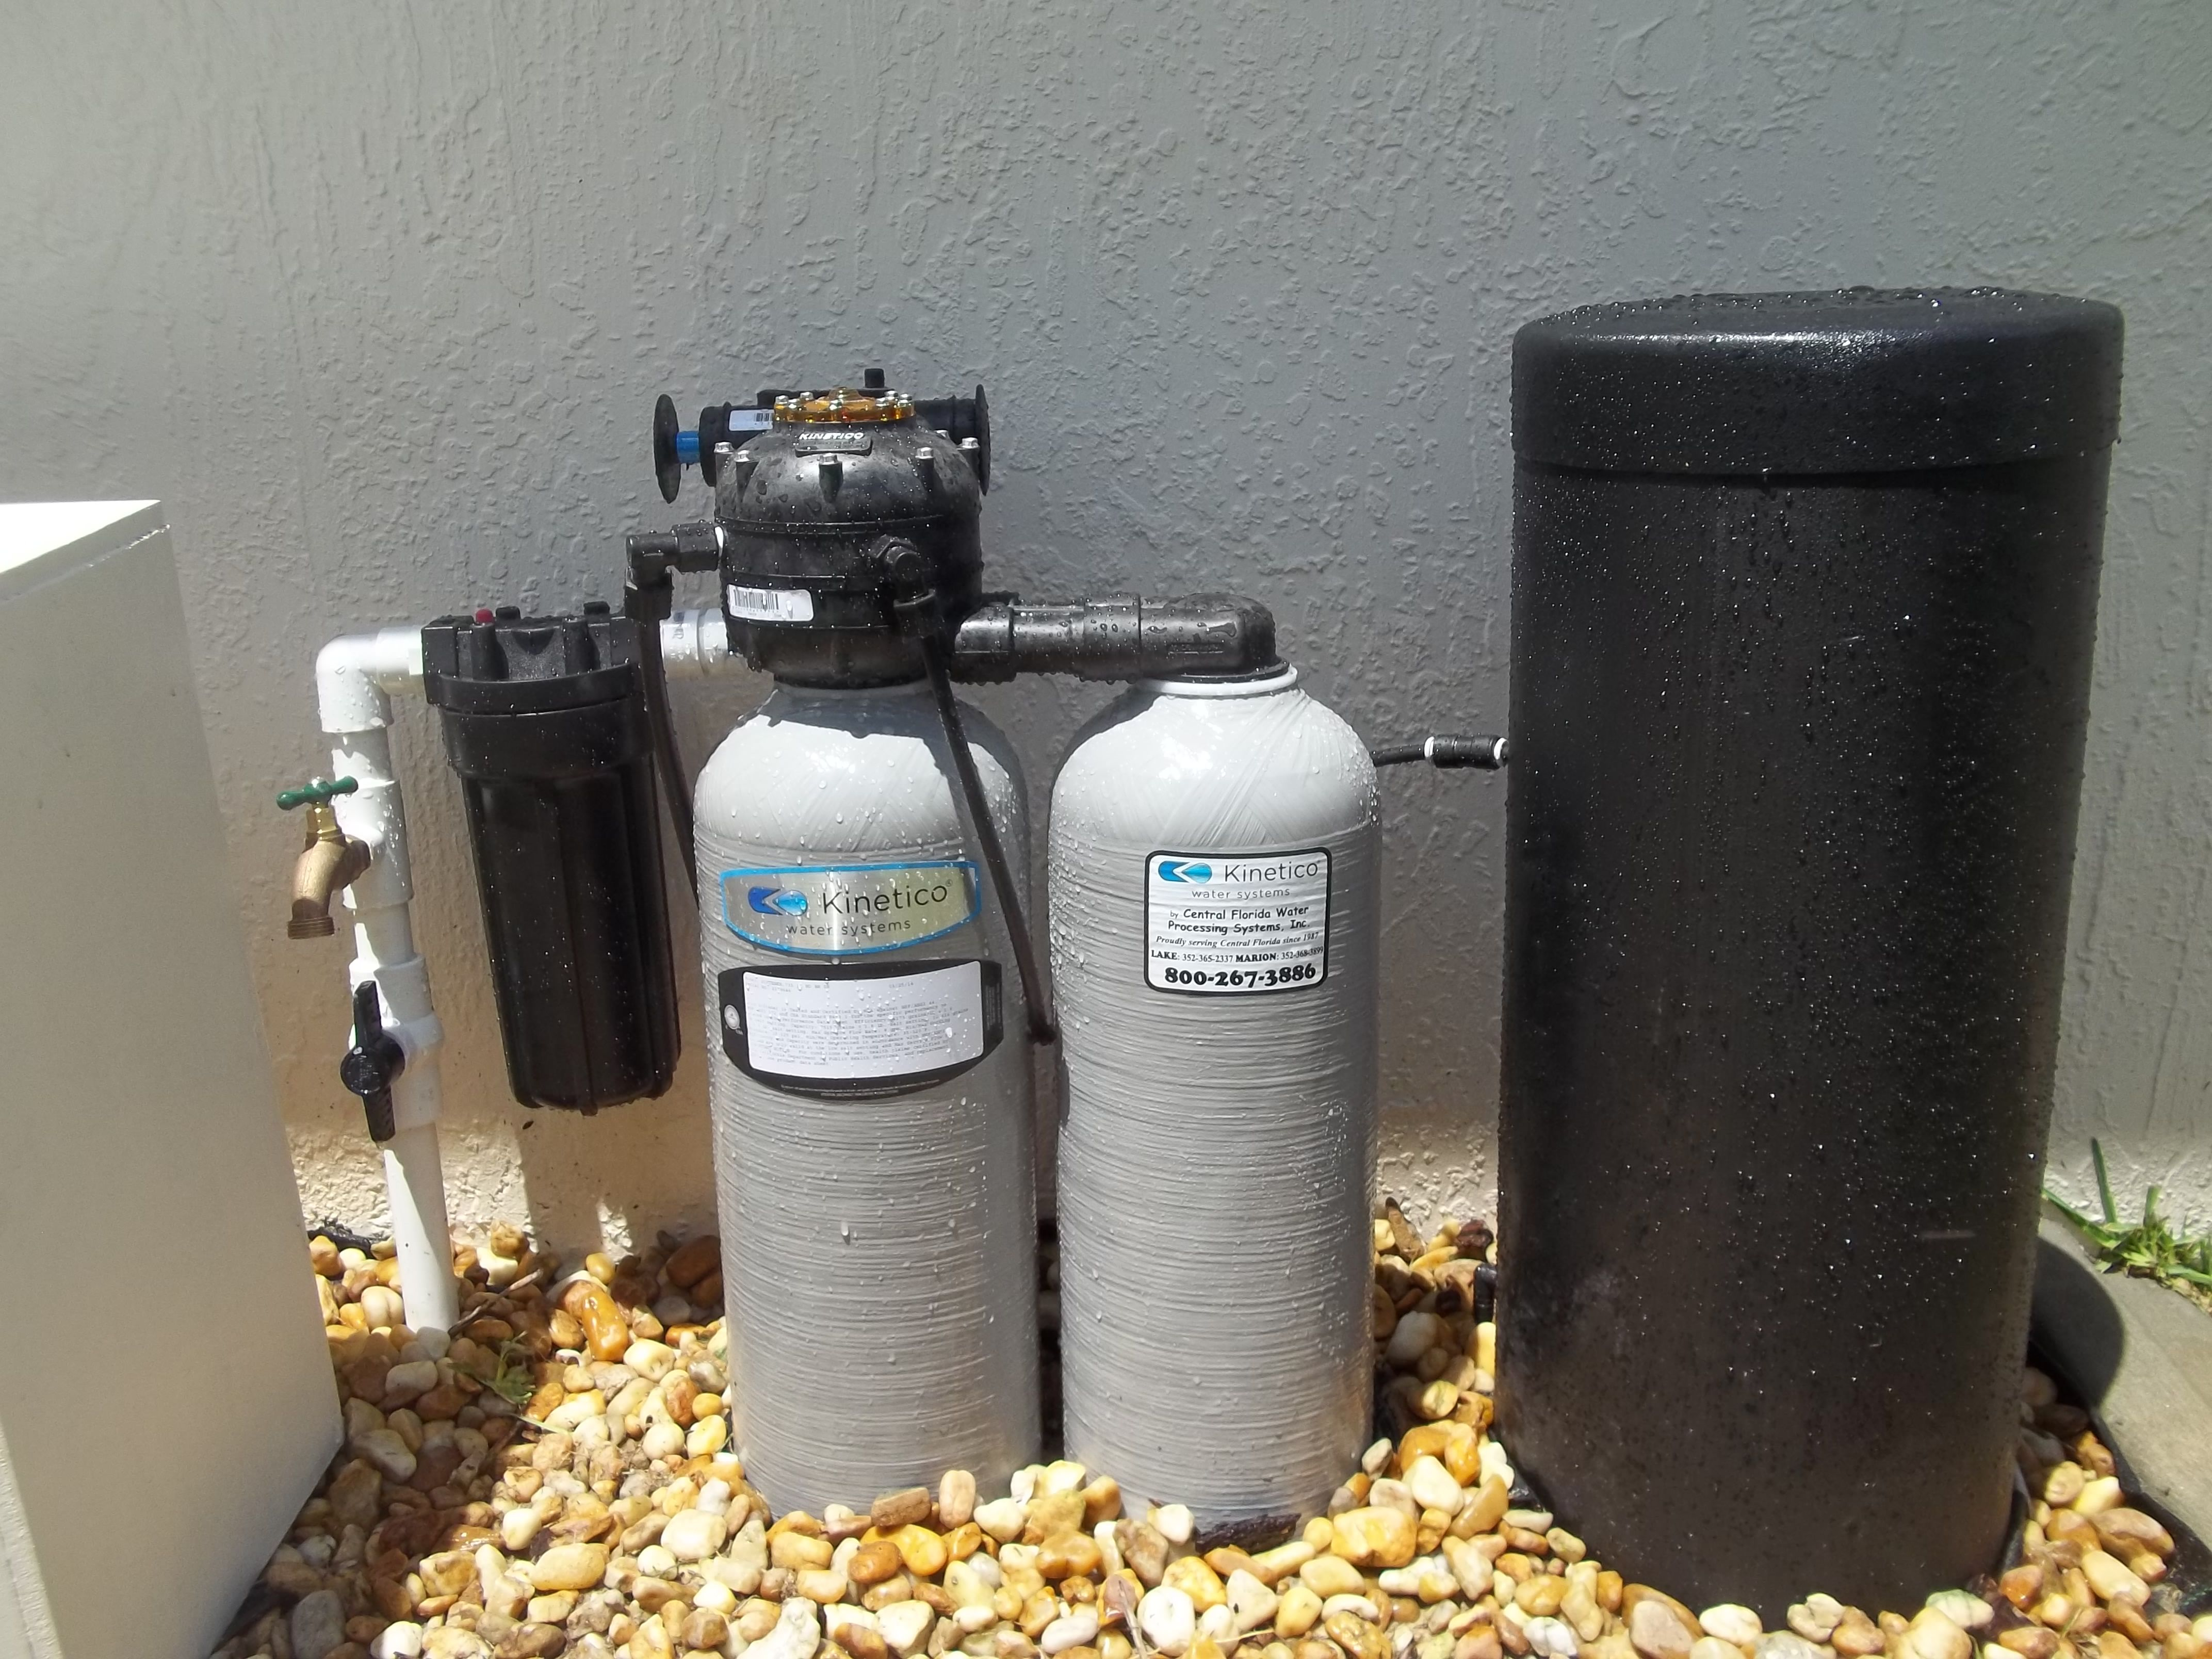 Kinetico Signature 735 Installed Outside For Soft Clean And Iron Free Water Water Treatment System Kinetico Water Water Treatment